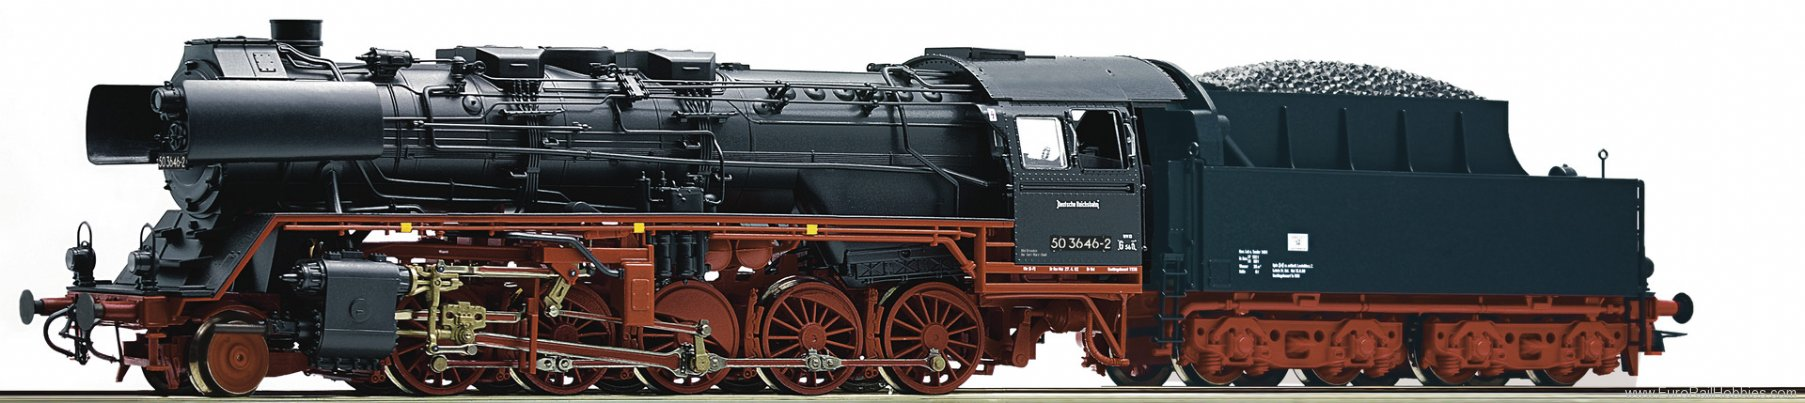 Roco 62169 Steam locomotive 50 3646, DR (Digital Sound)